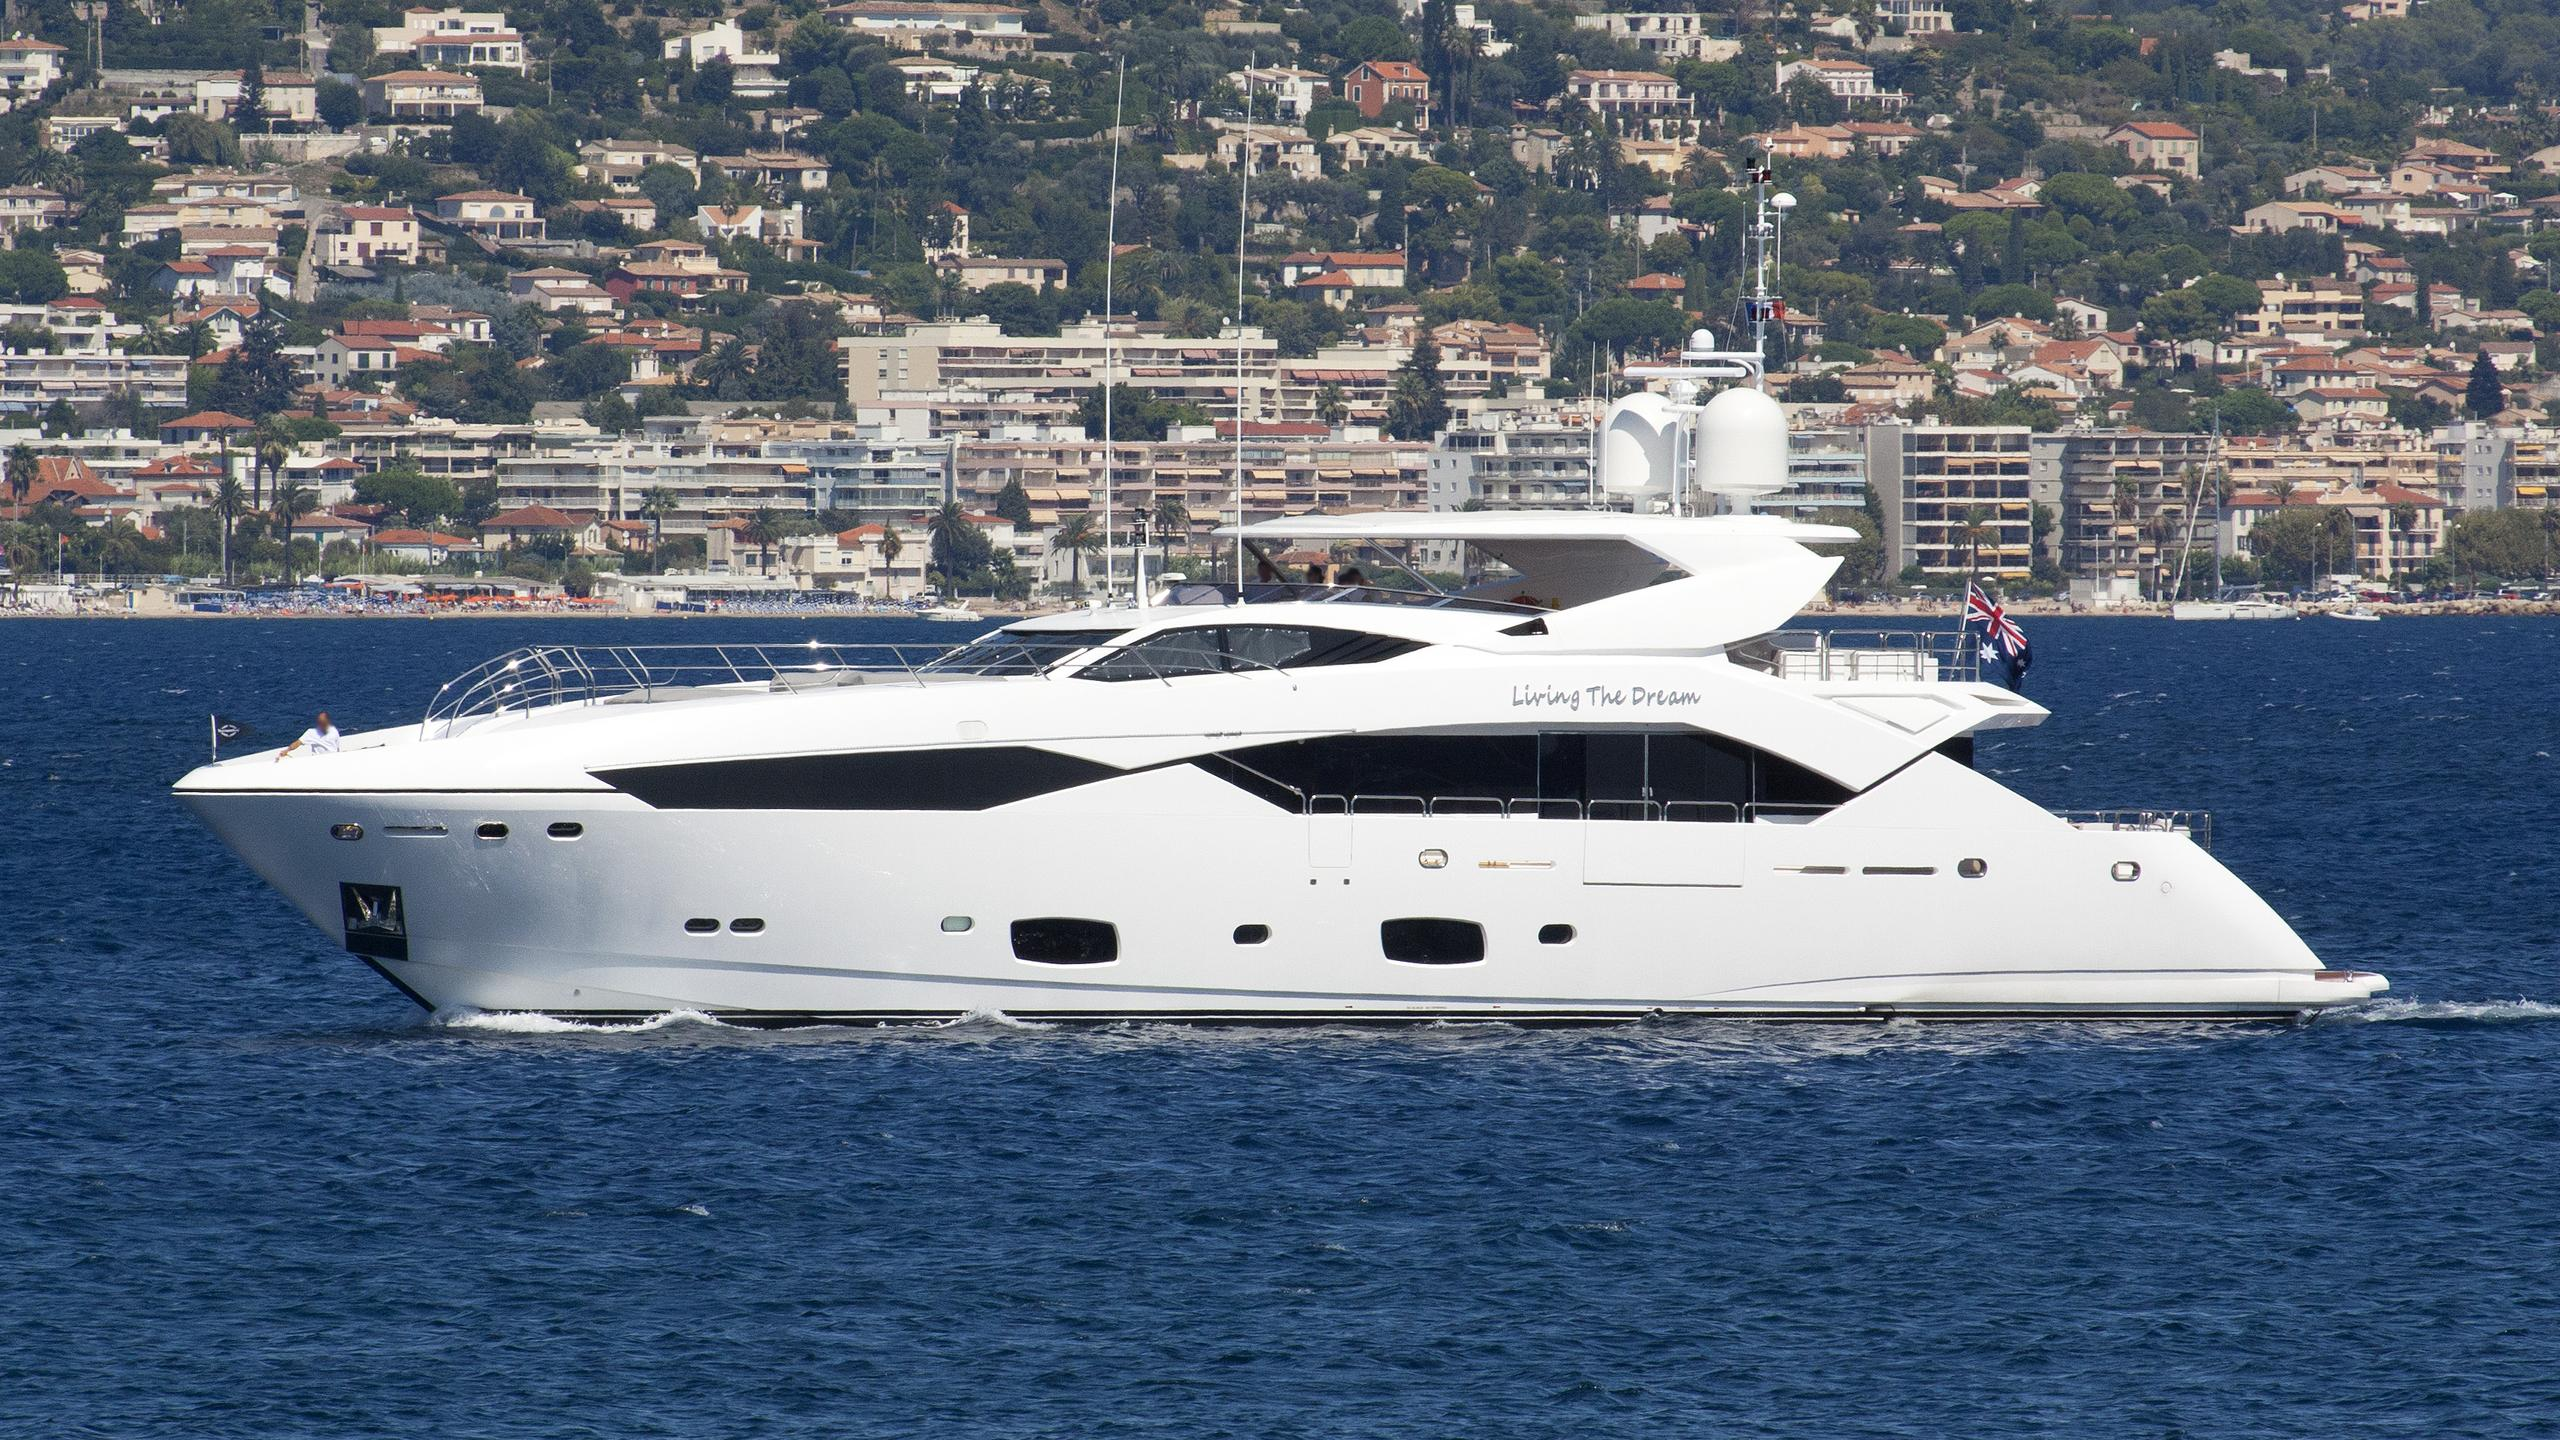 settlement living the dream motoryacht sunseeker 115SY 2015 35m profile